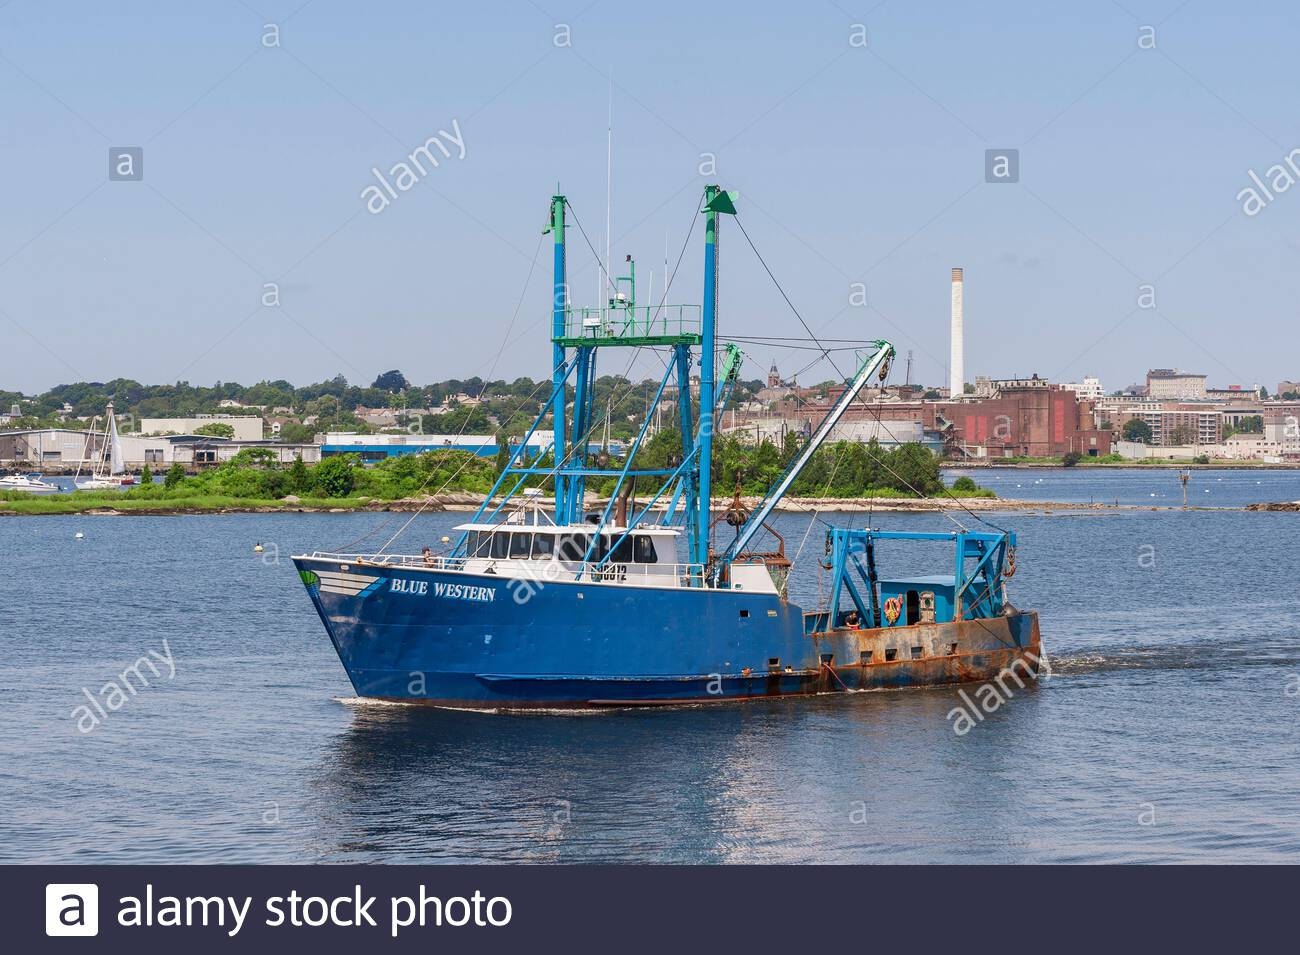 Fairhaven, Massachusetts, USA - July 26, 2019: Scalloper Blue Western outbound from Fairhaven Stock Photo